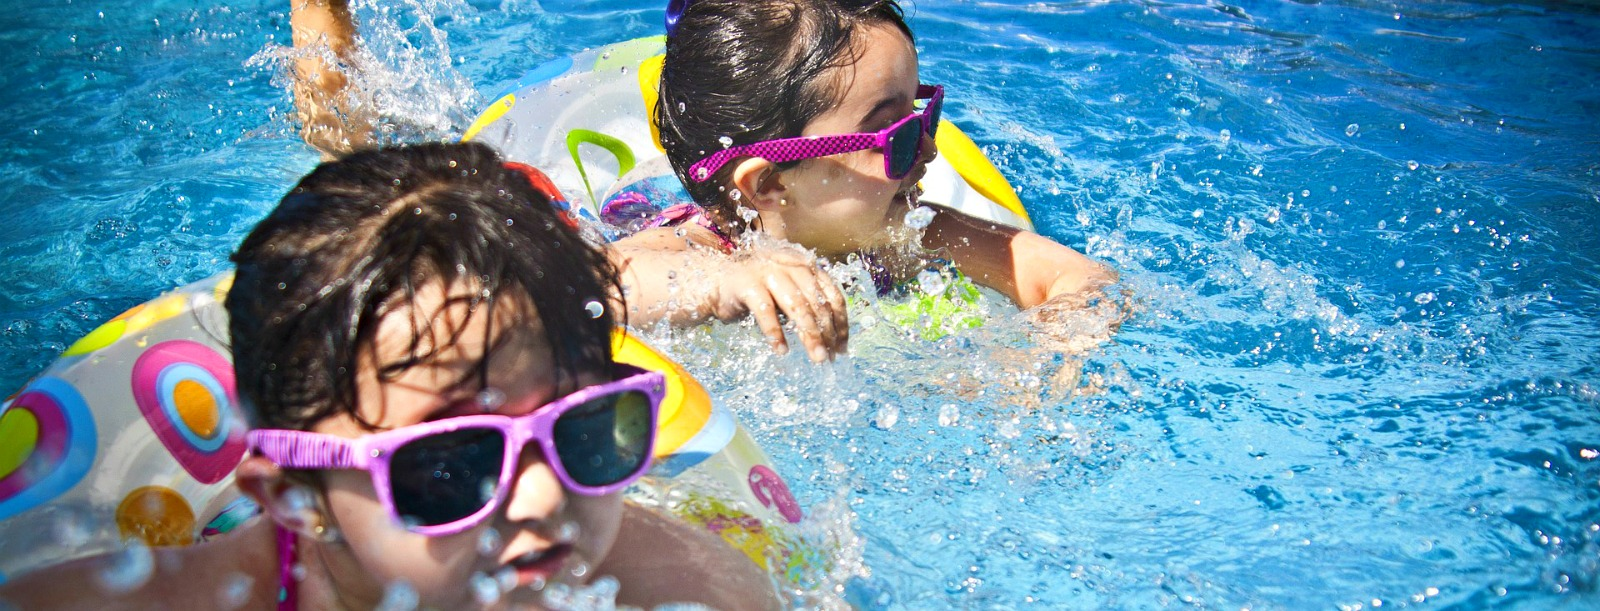 Girls using floats and sunglasses in a swimming pool